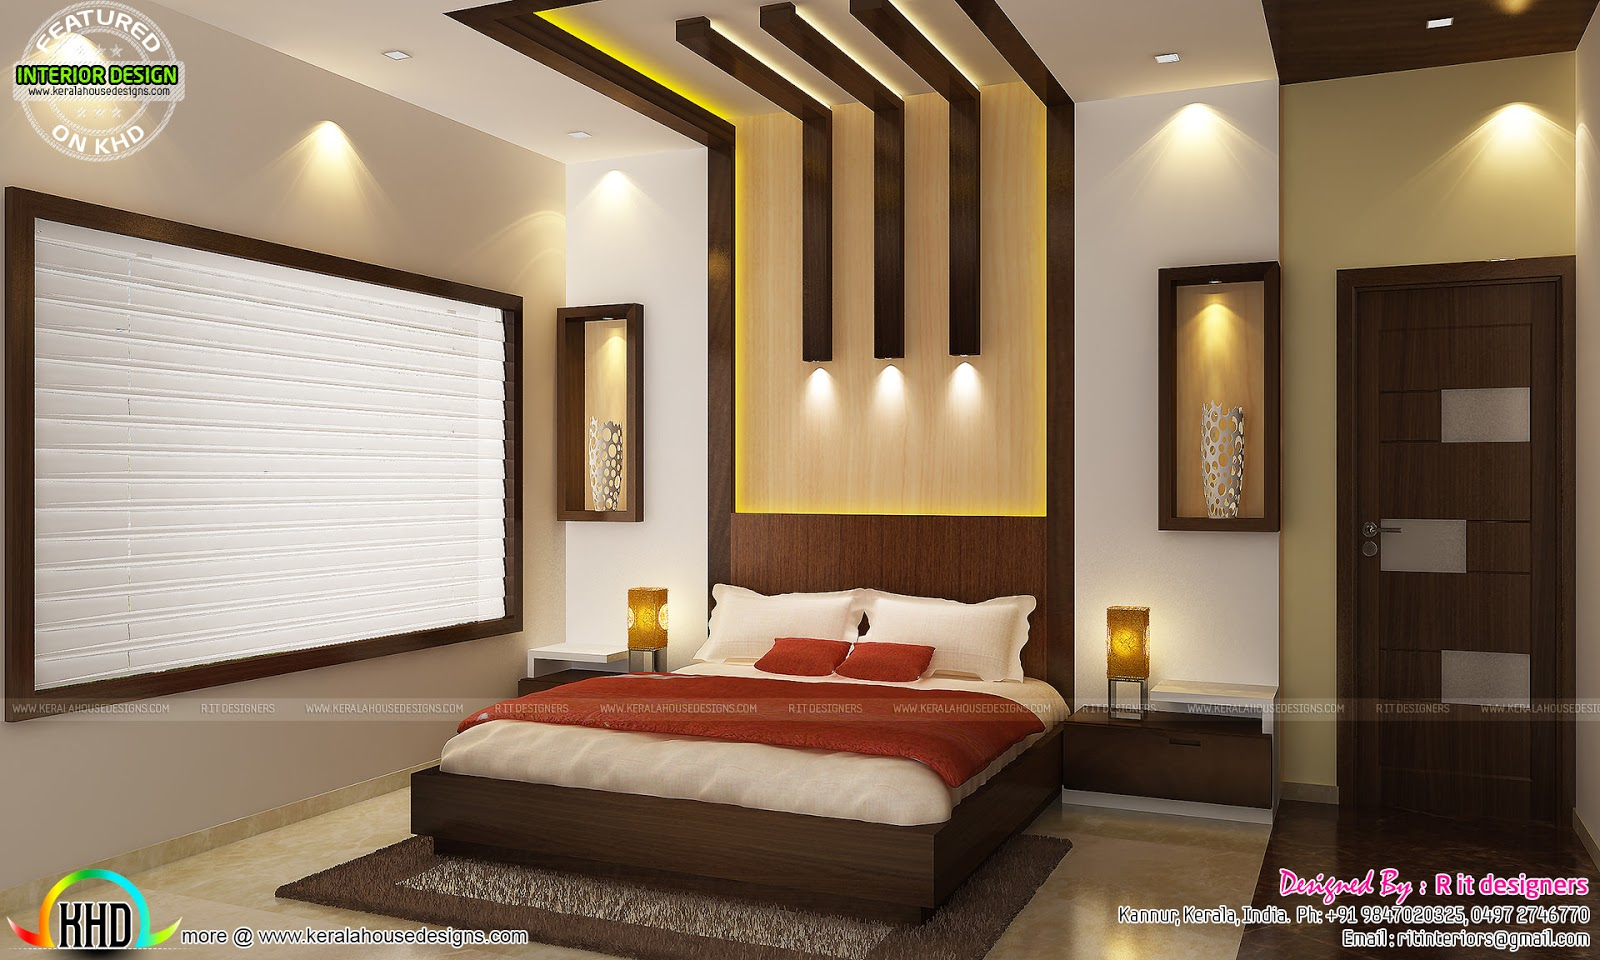 Kitchen living bedroom dining interior decor kerala for Home bedroom design photos